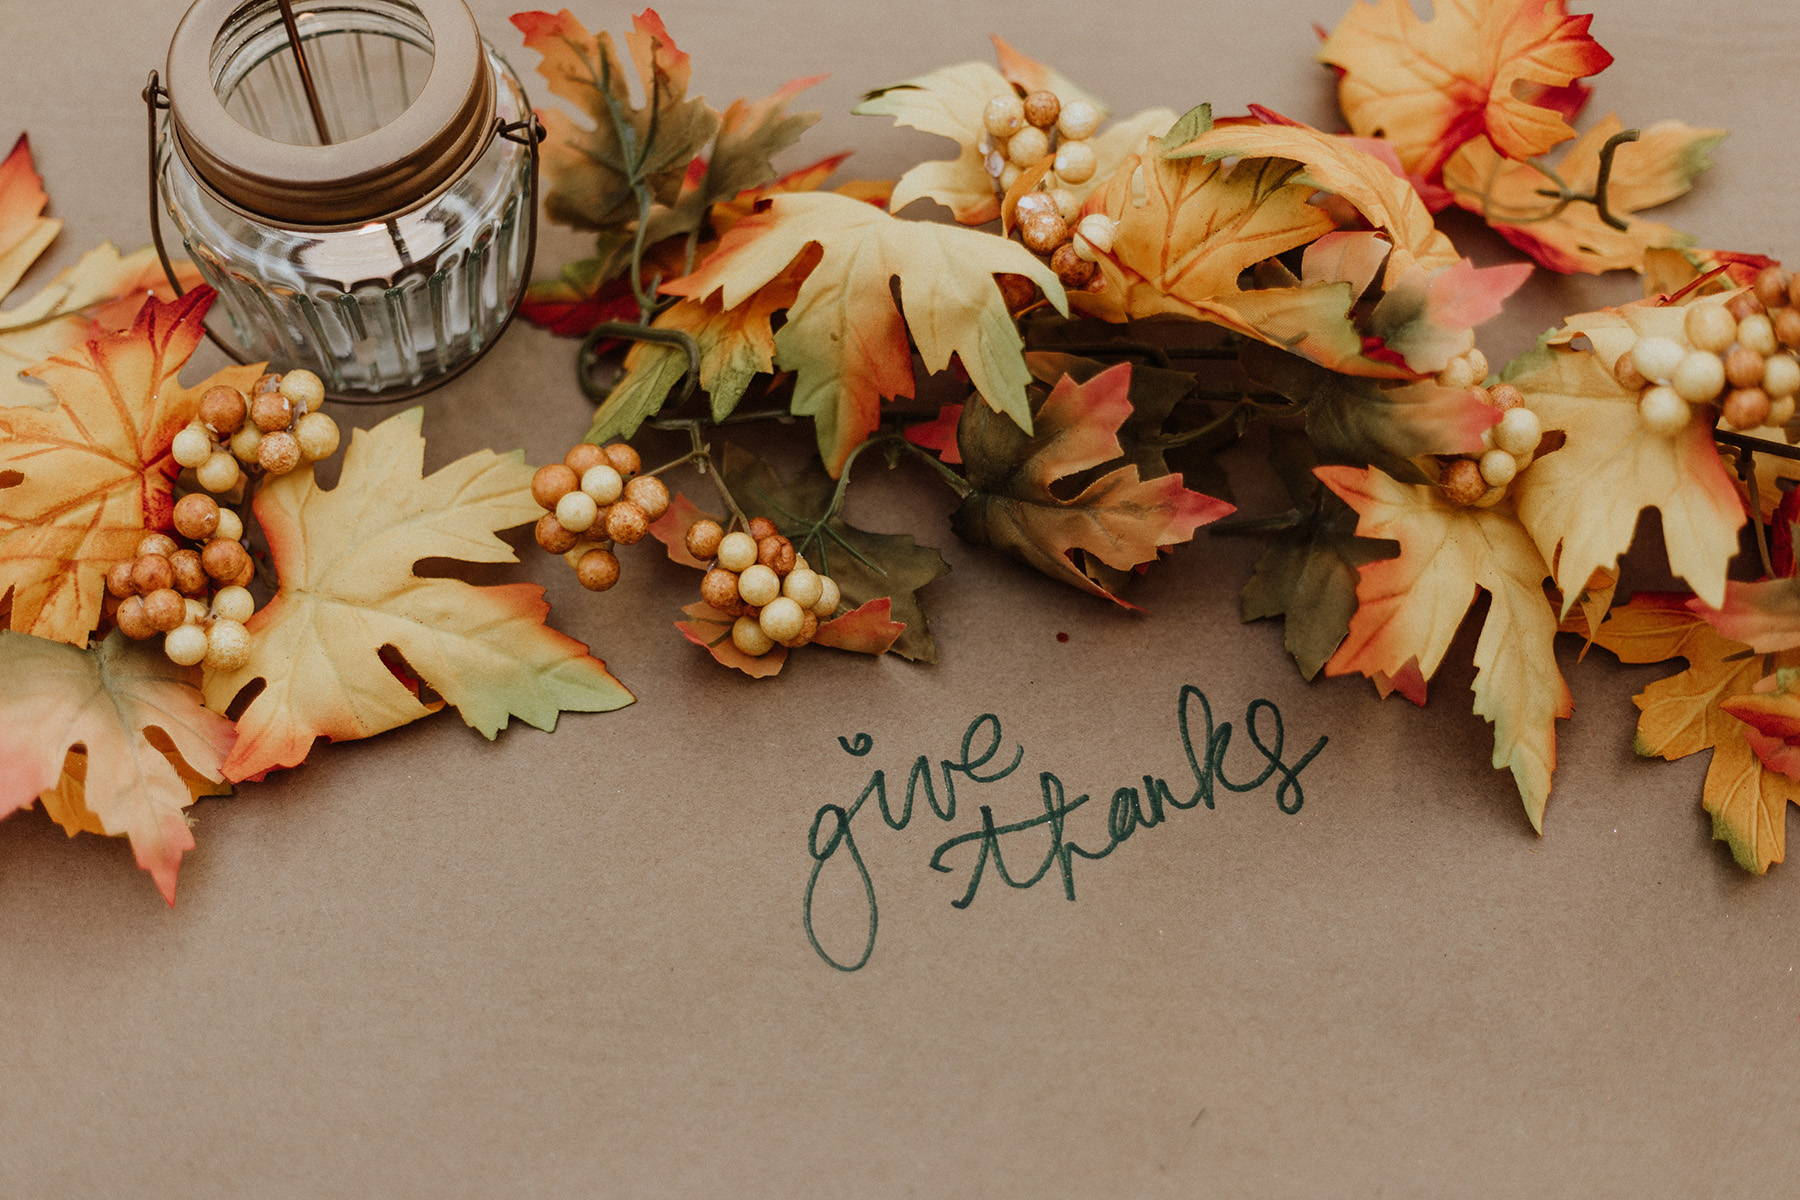 Thanksgiving themed photo of table set with message of giving thanks_Photo by Priscilla Du-Preez